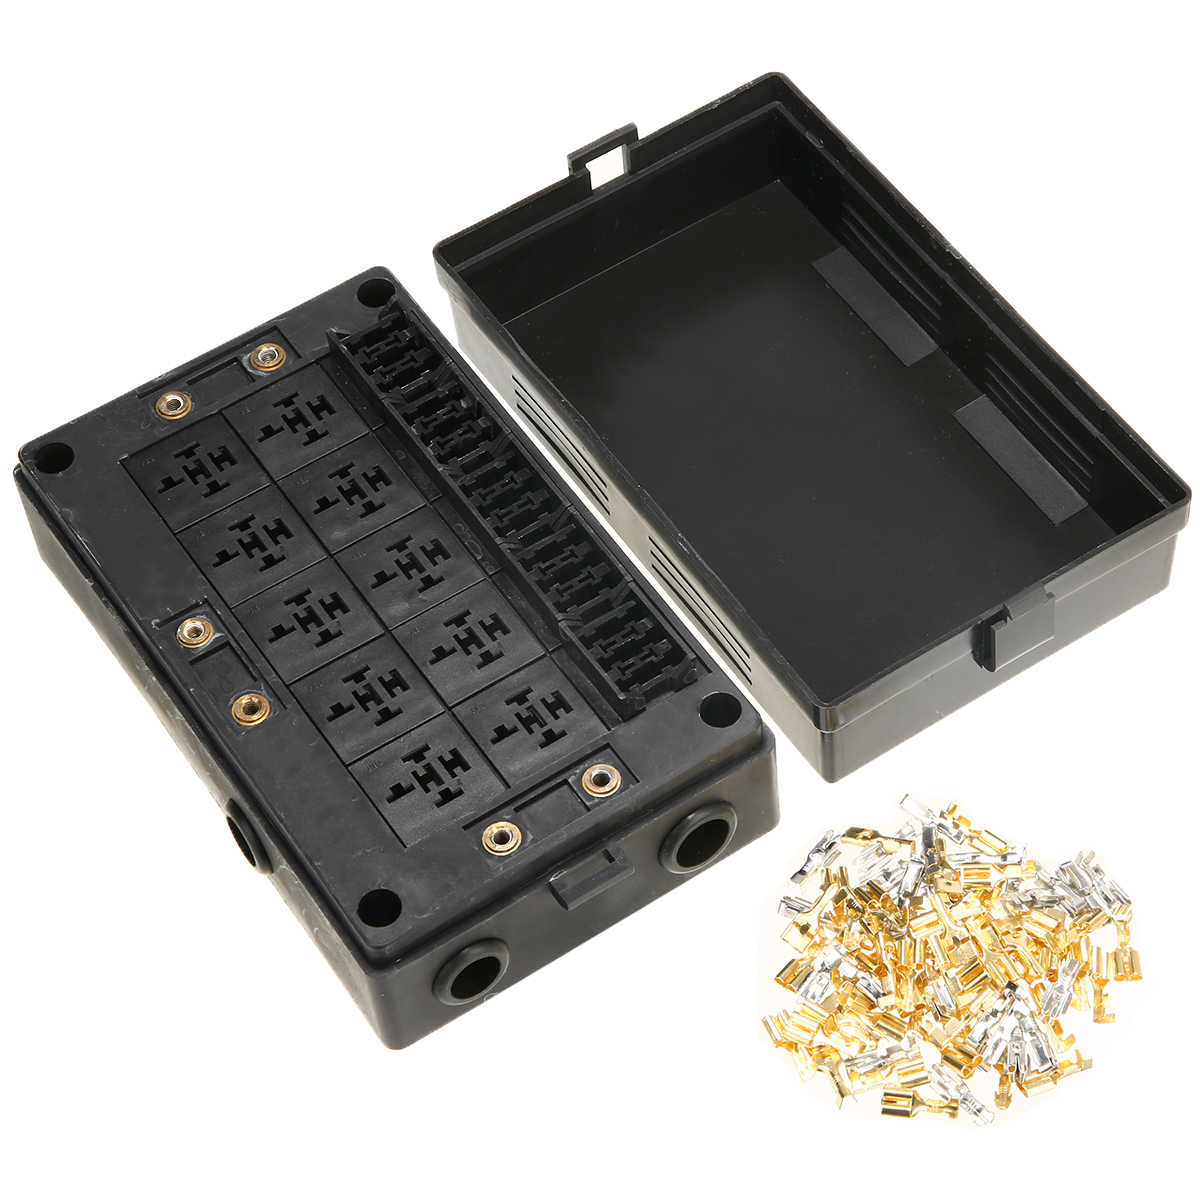 18 way fuse relay box holder block circuit protector terminals car auto standard fuses holder replacement [ 1200 x 1200 Pixel ]